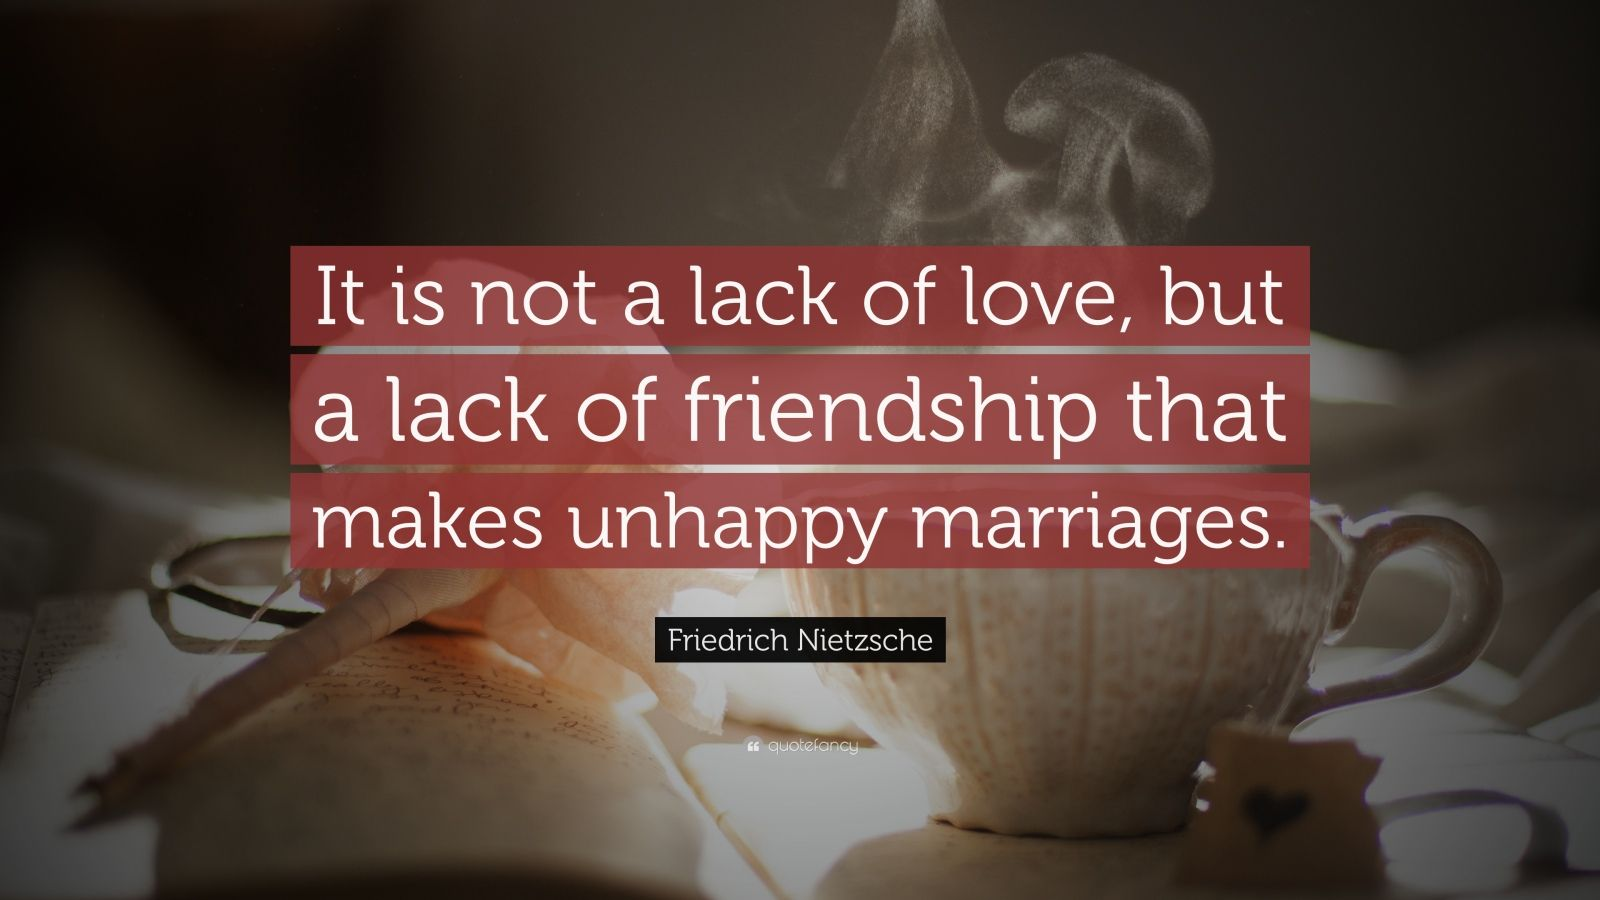 friedrich nietzsche quote it is not a lack of love but